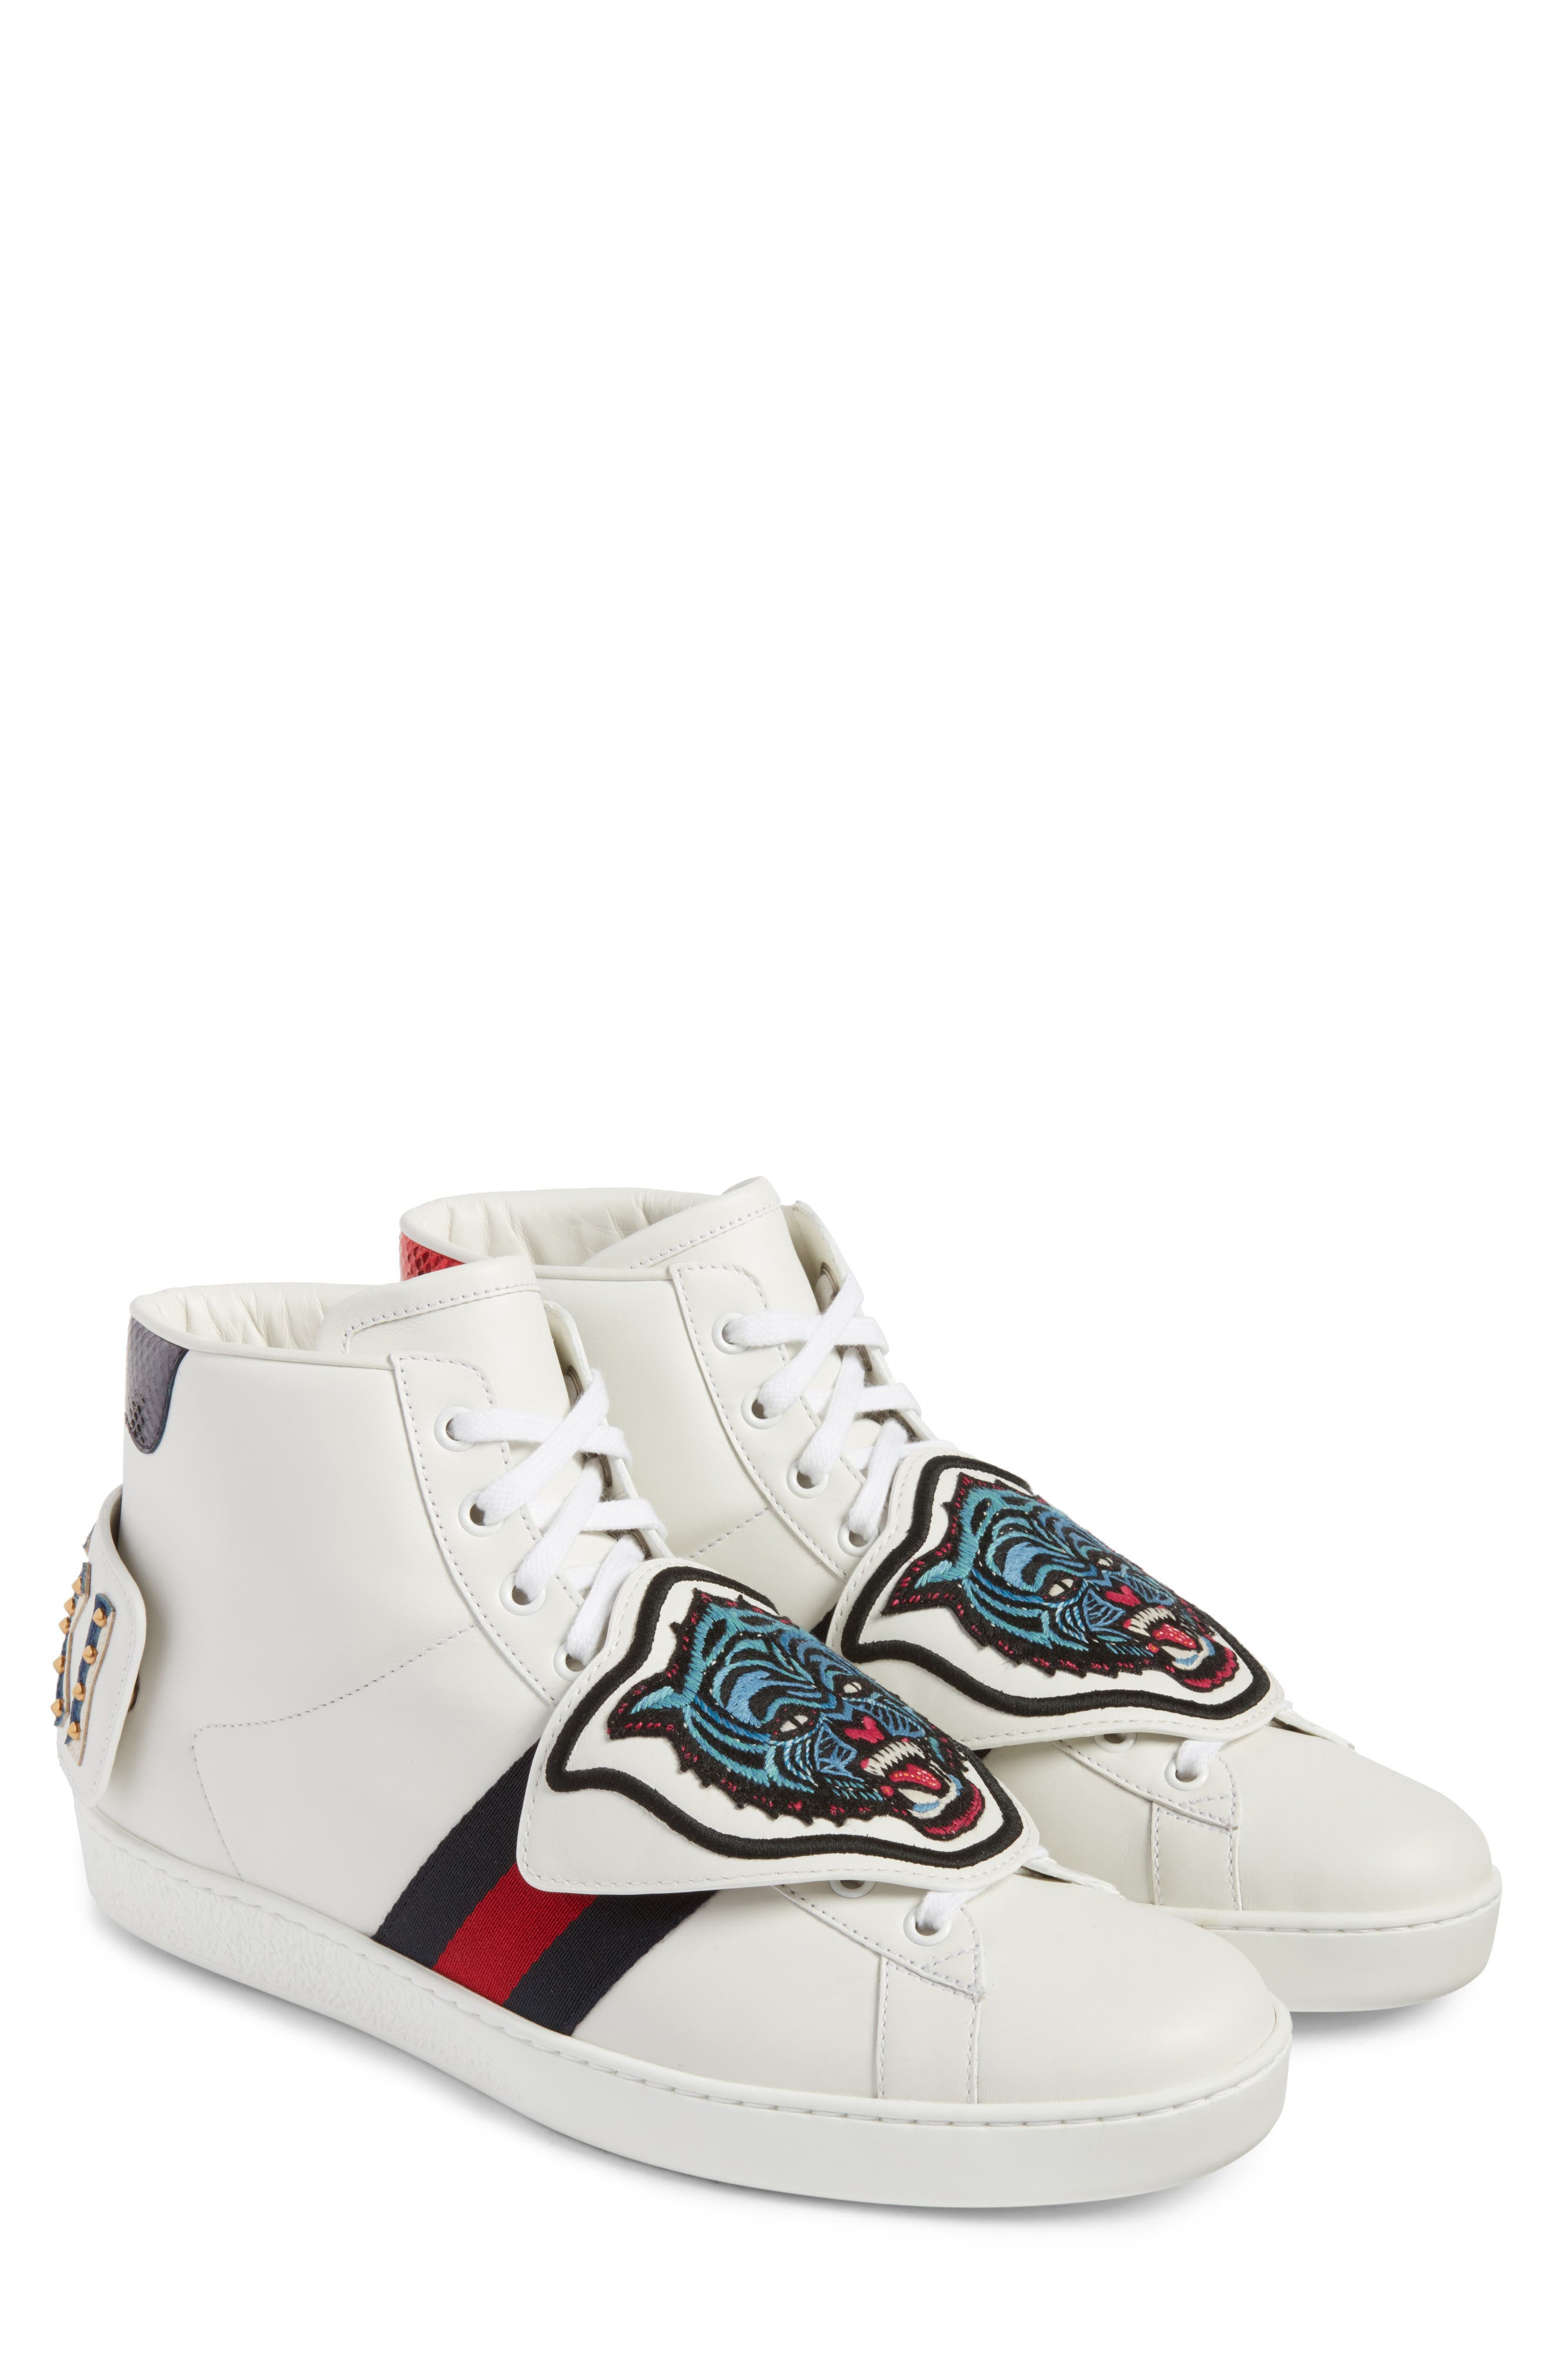 New Ace Jaguar Embroidered Patch High Top Sneaker,                             Main thumbnail 1, color,                             Bianco